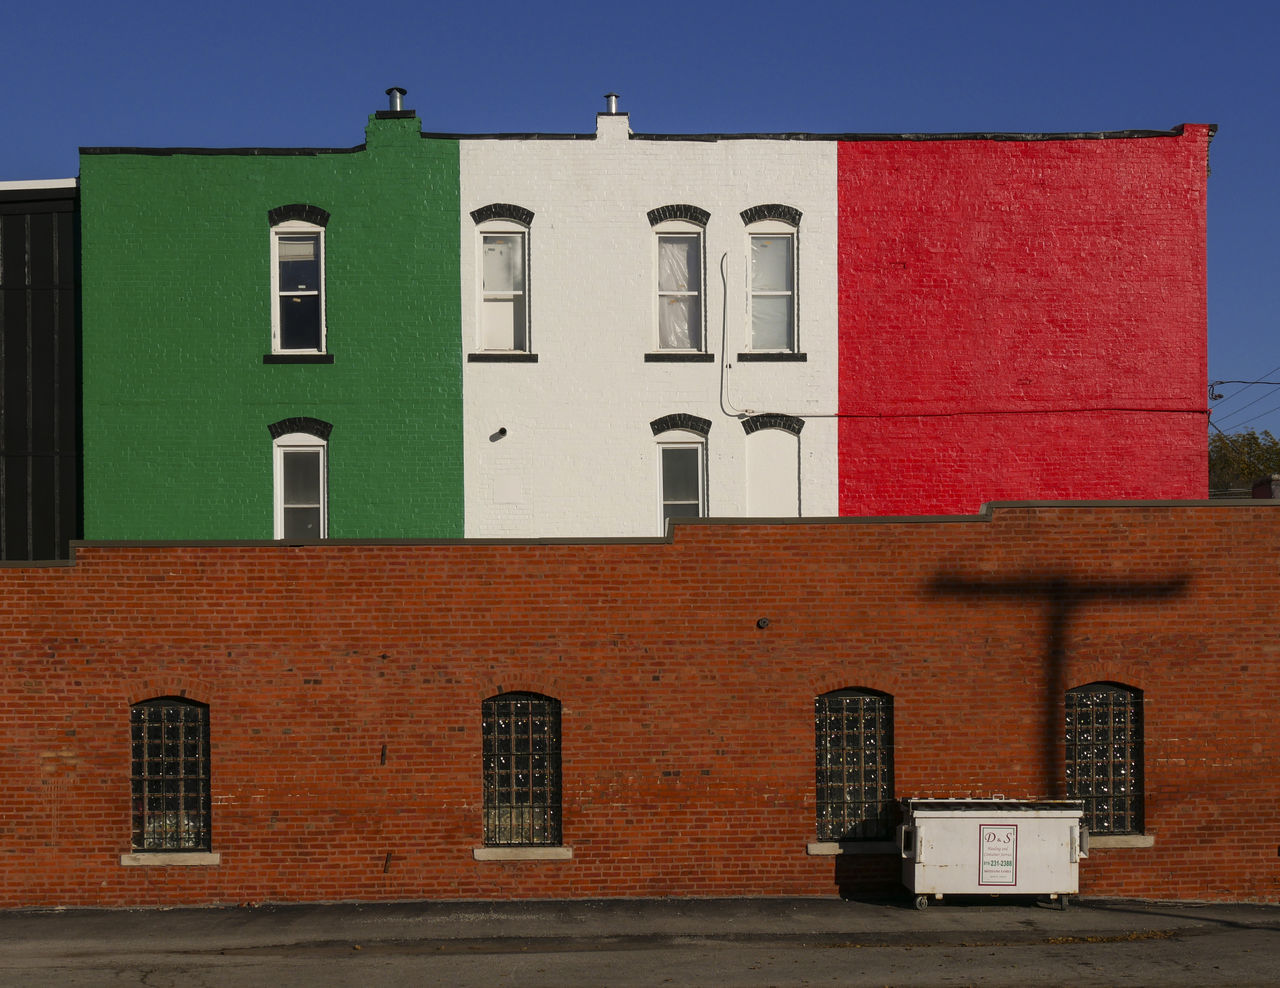 Italian flag paint on building against clear sky